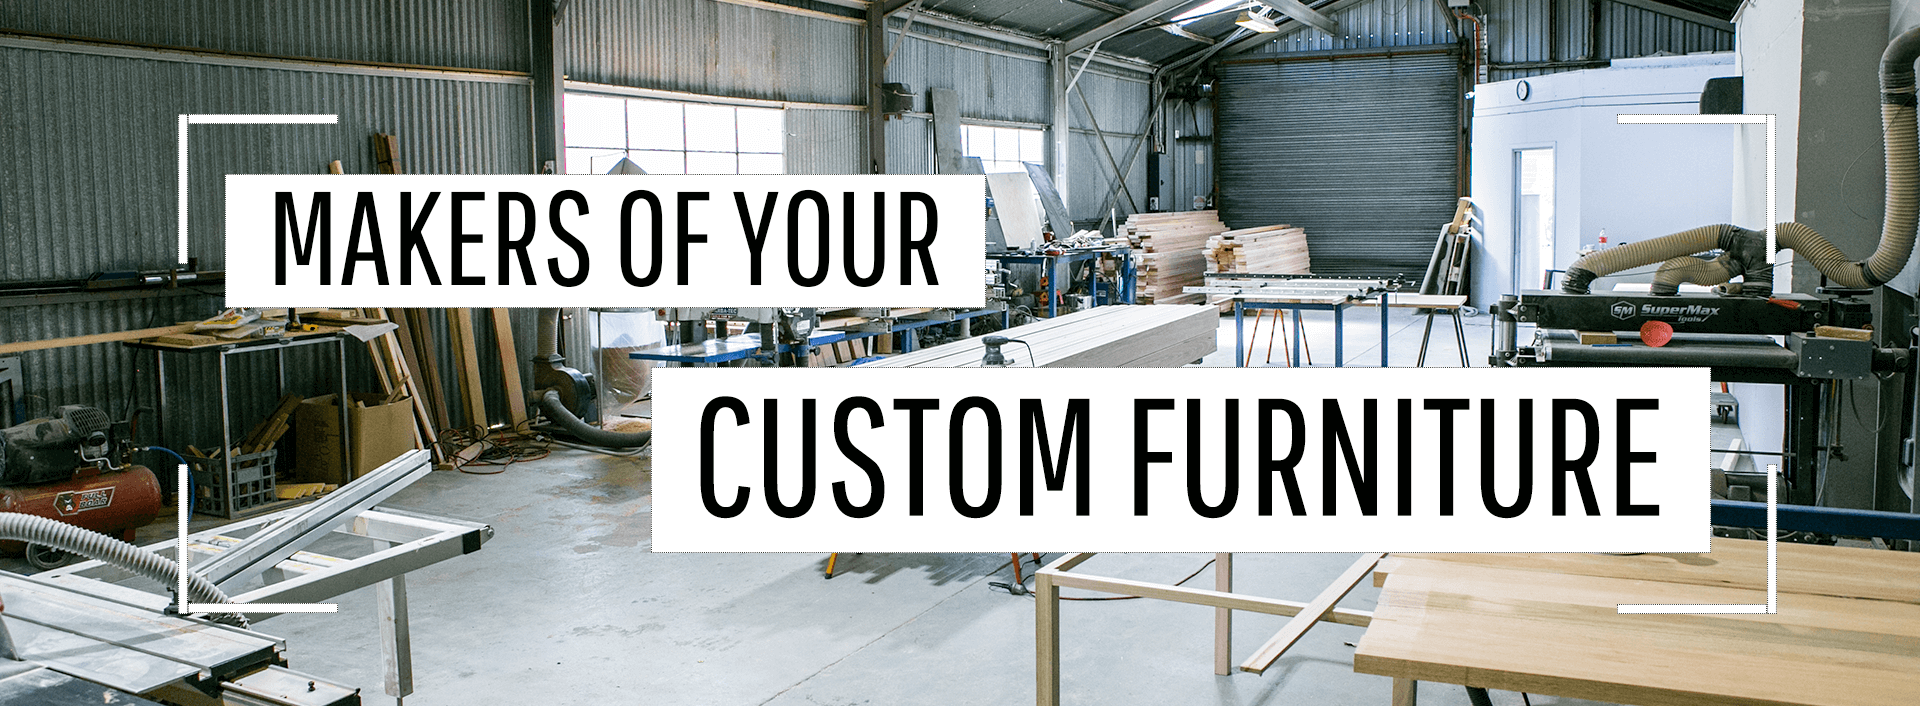 Workshop 24 - Makers of your Custom Furniture